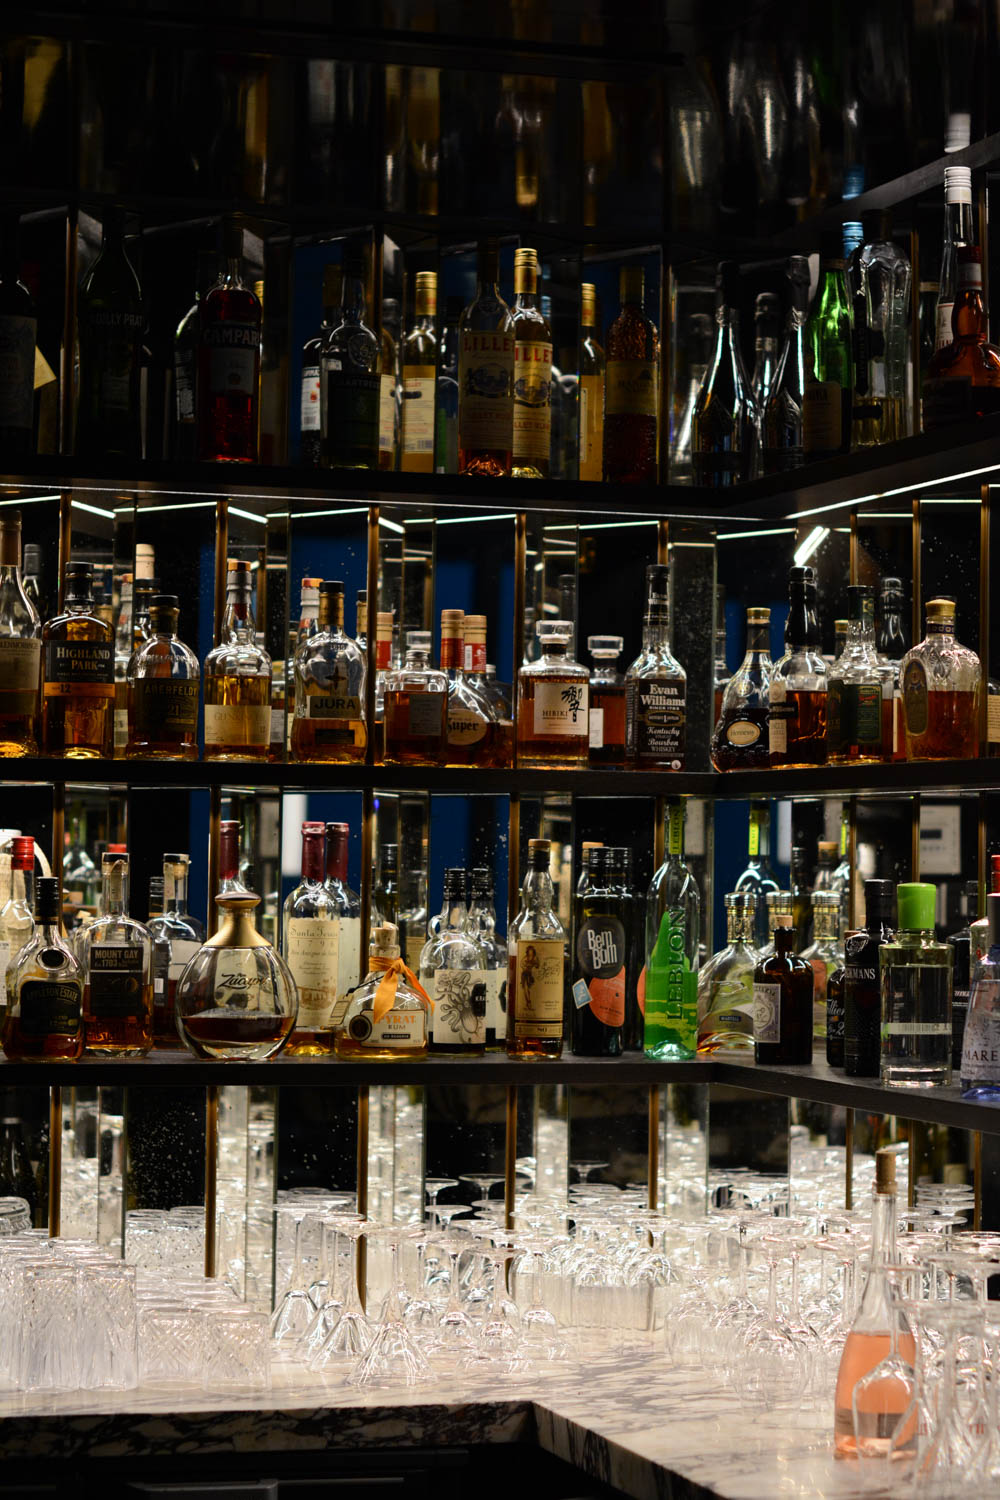 paris-hotel-bar.jpg